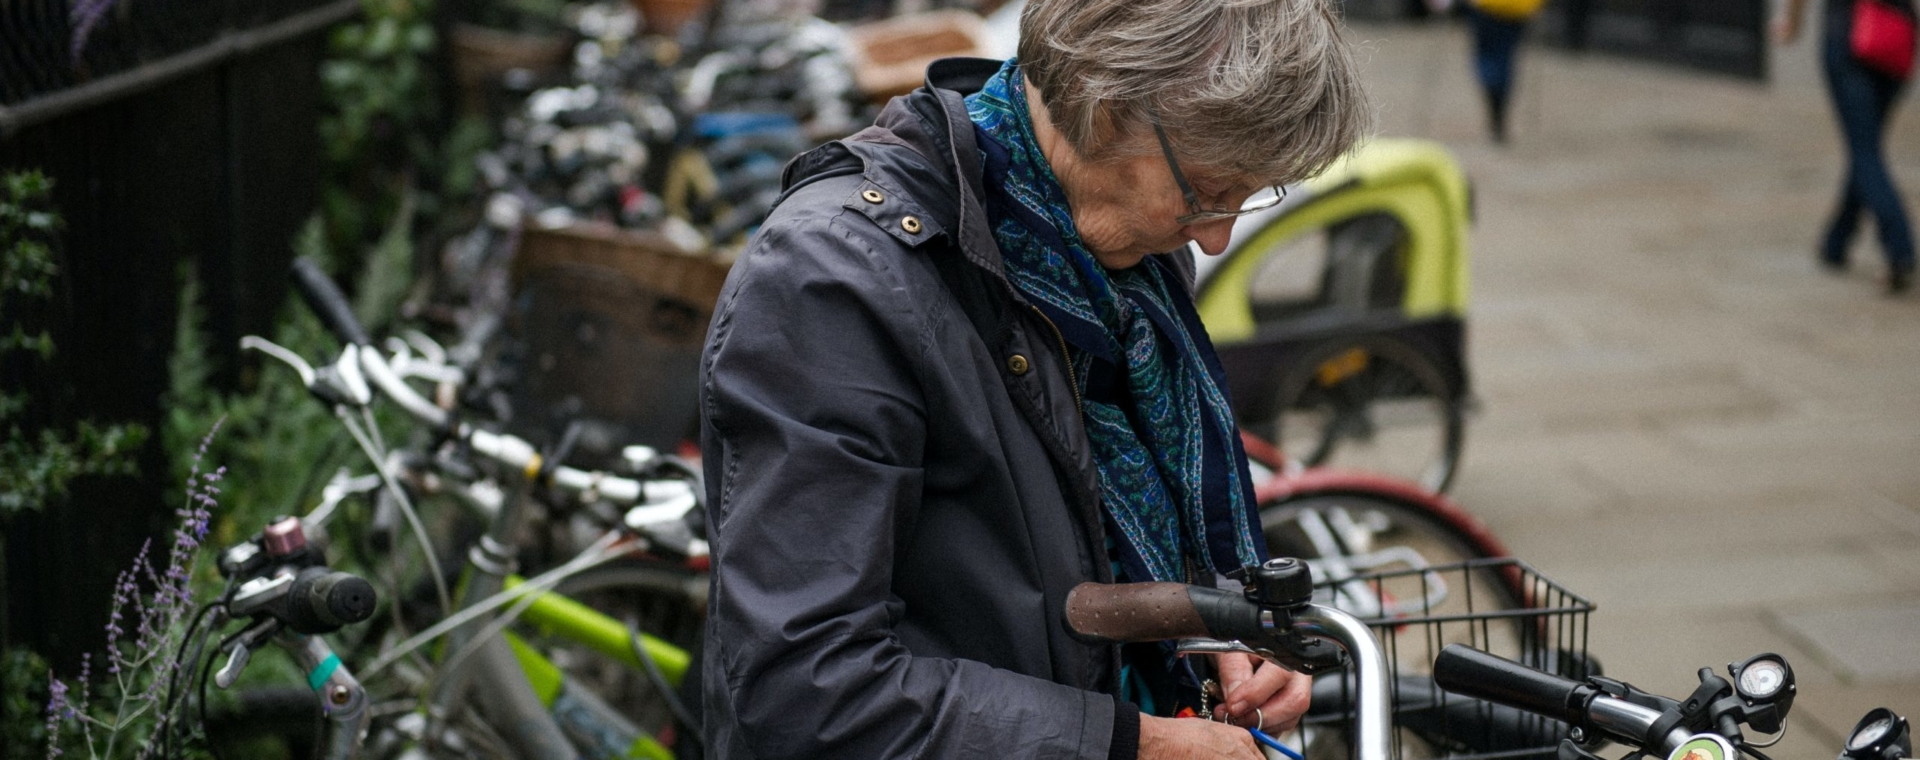 Woman with a bike. Keeping our ageing population active – the role of healthcare professionals.